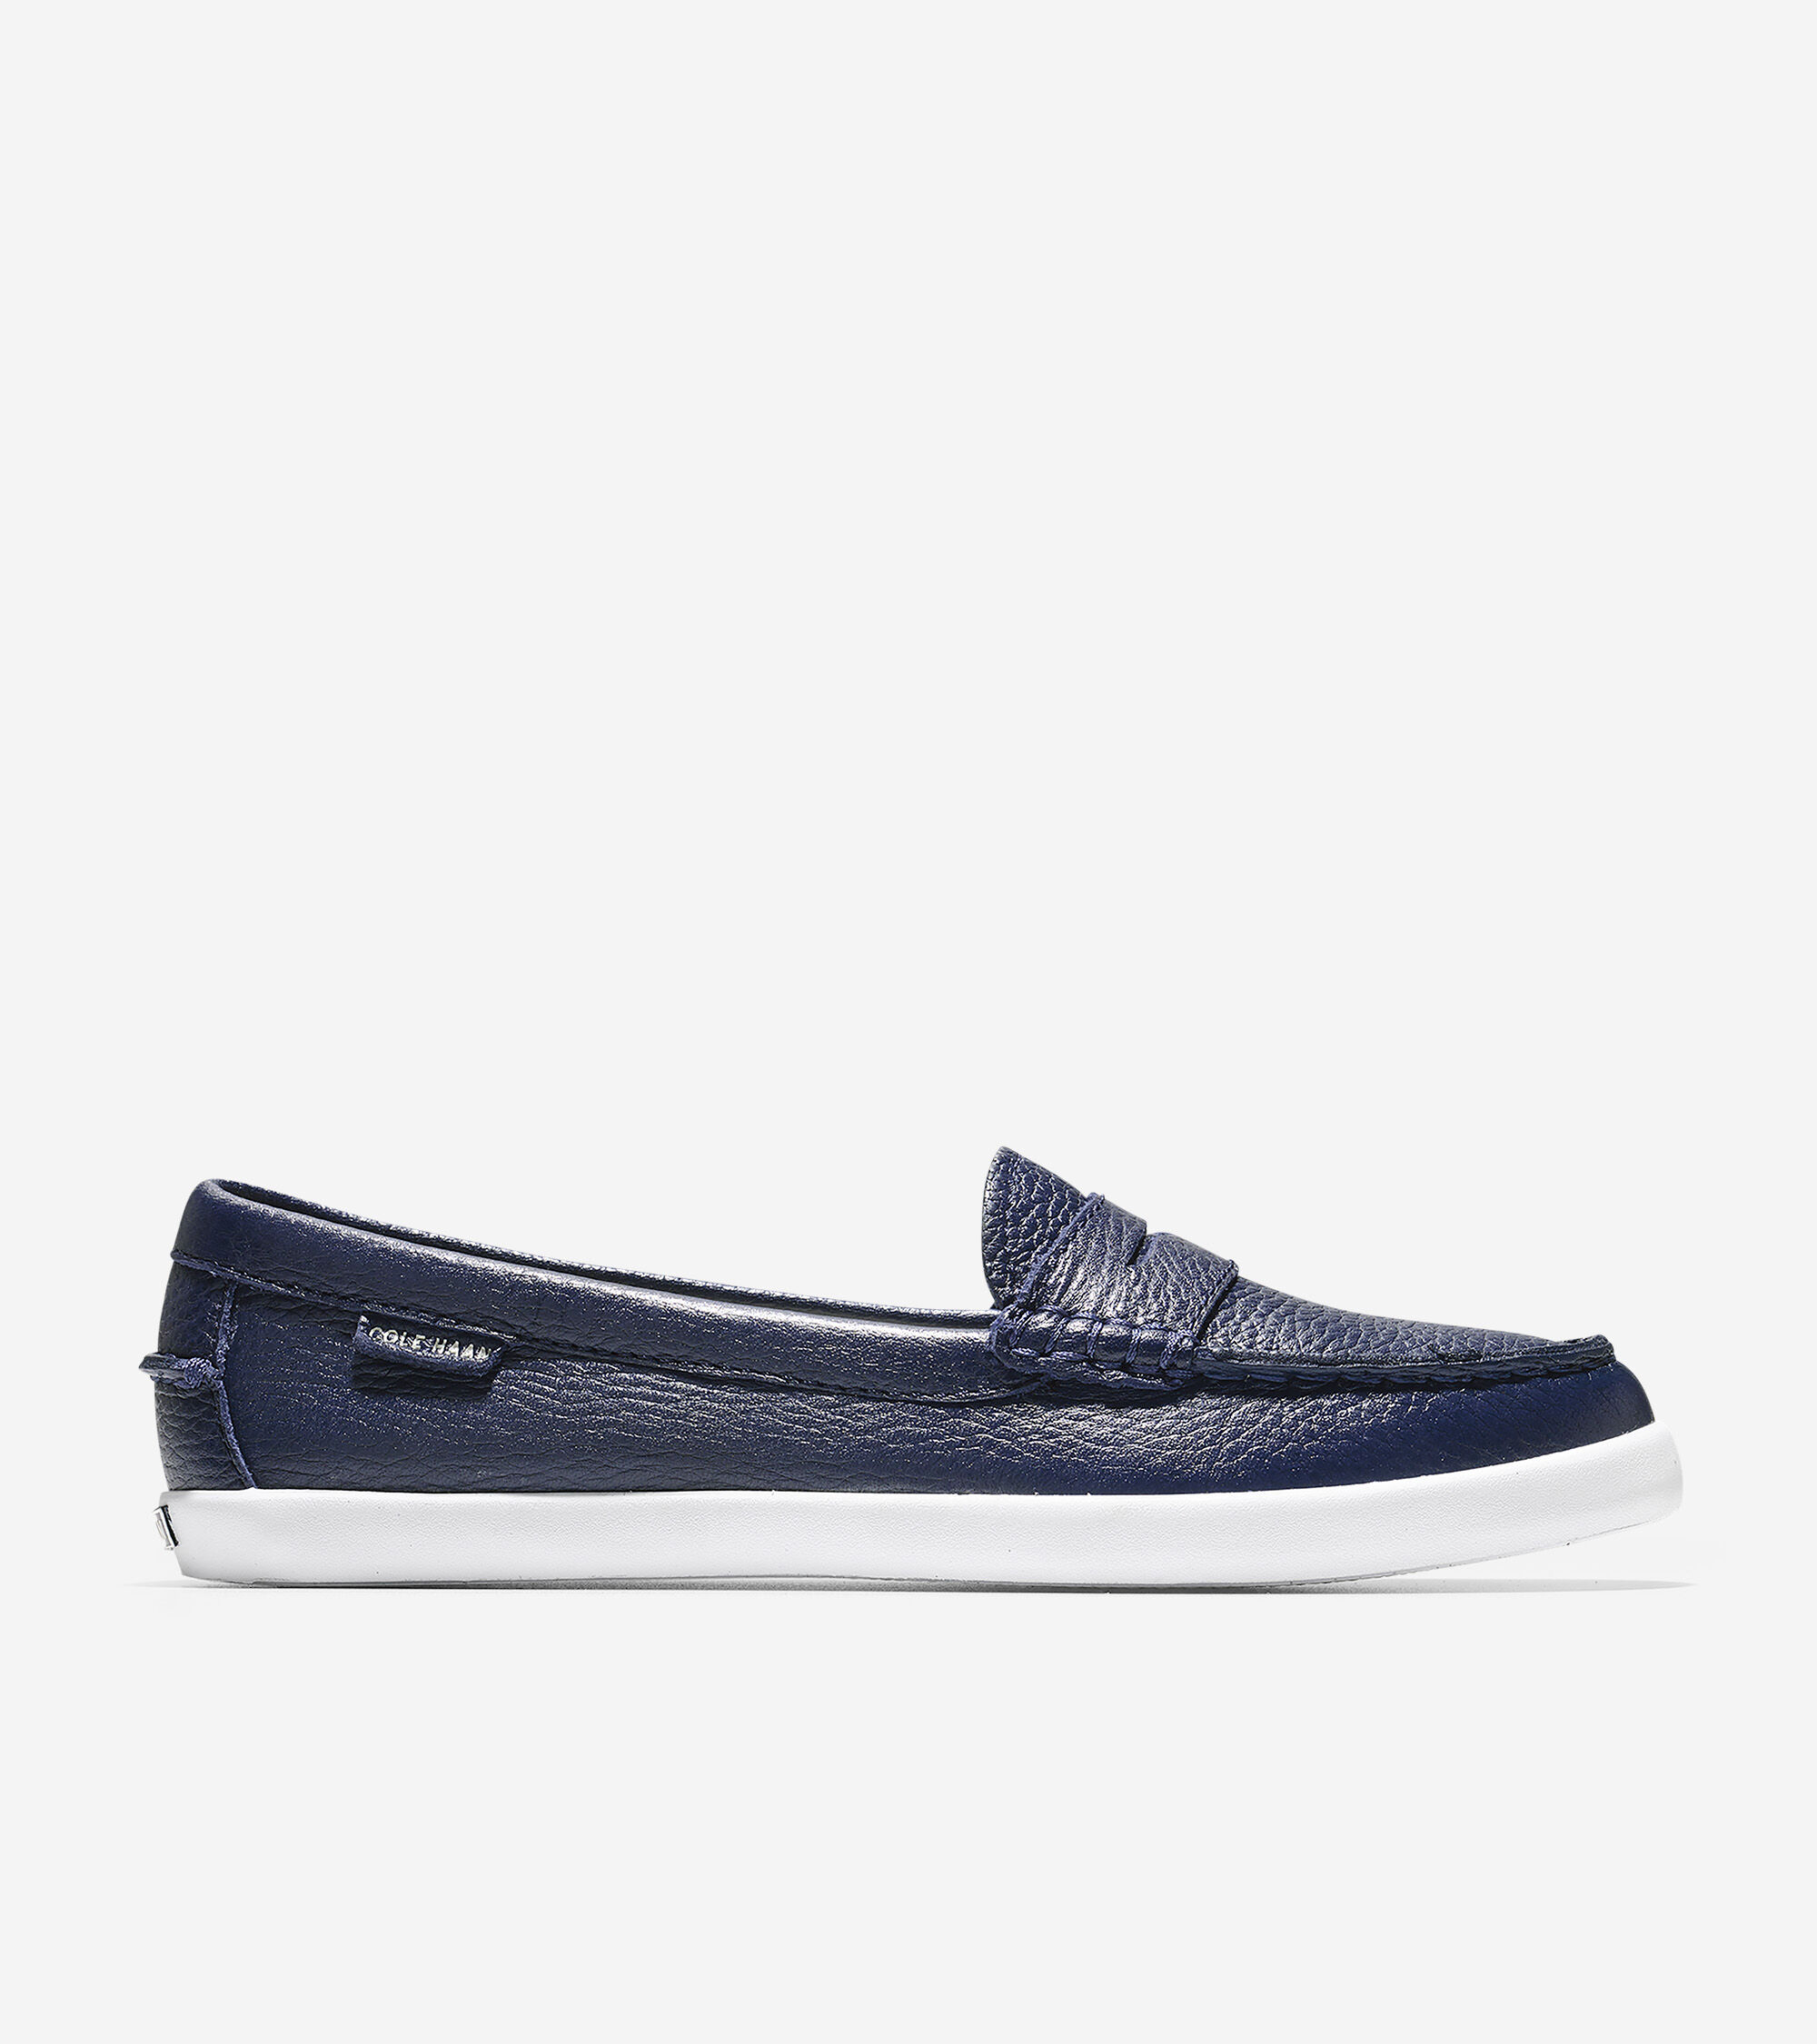 sale retailer 52f9a 85c9f Womens Pinch Leather Weekenders in Blazer Blue Leather   Cole Haan